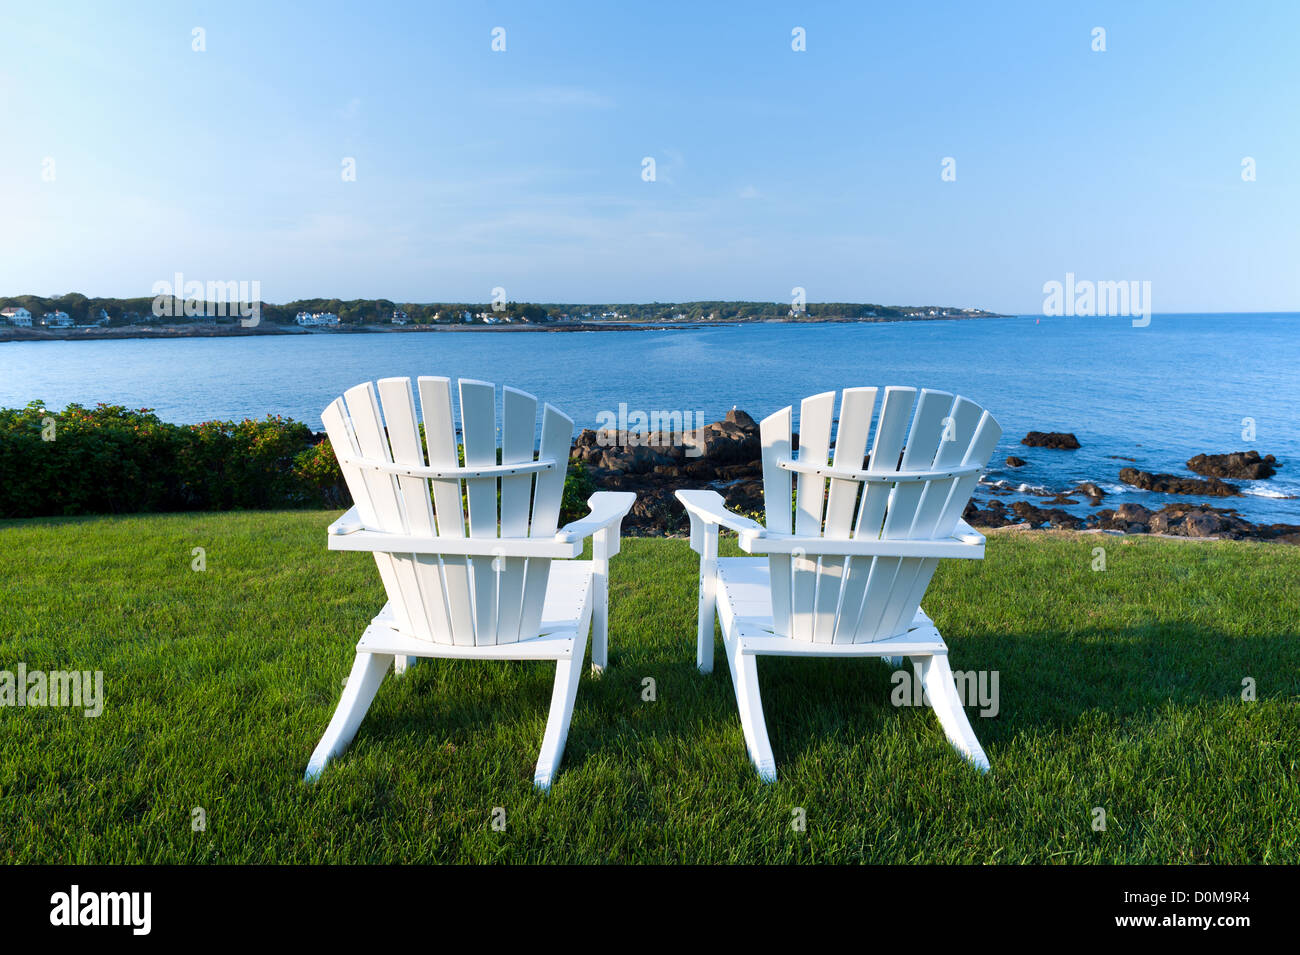 Two white Adirondack chairs on a lawn overlooking the Atlantic